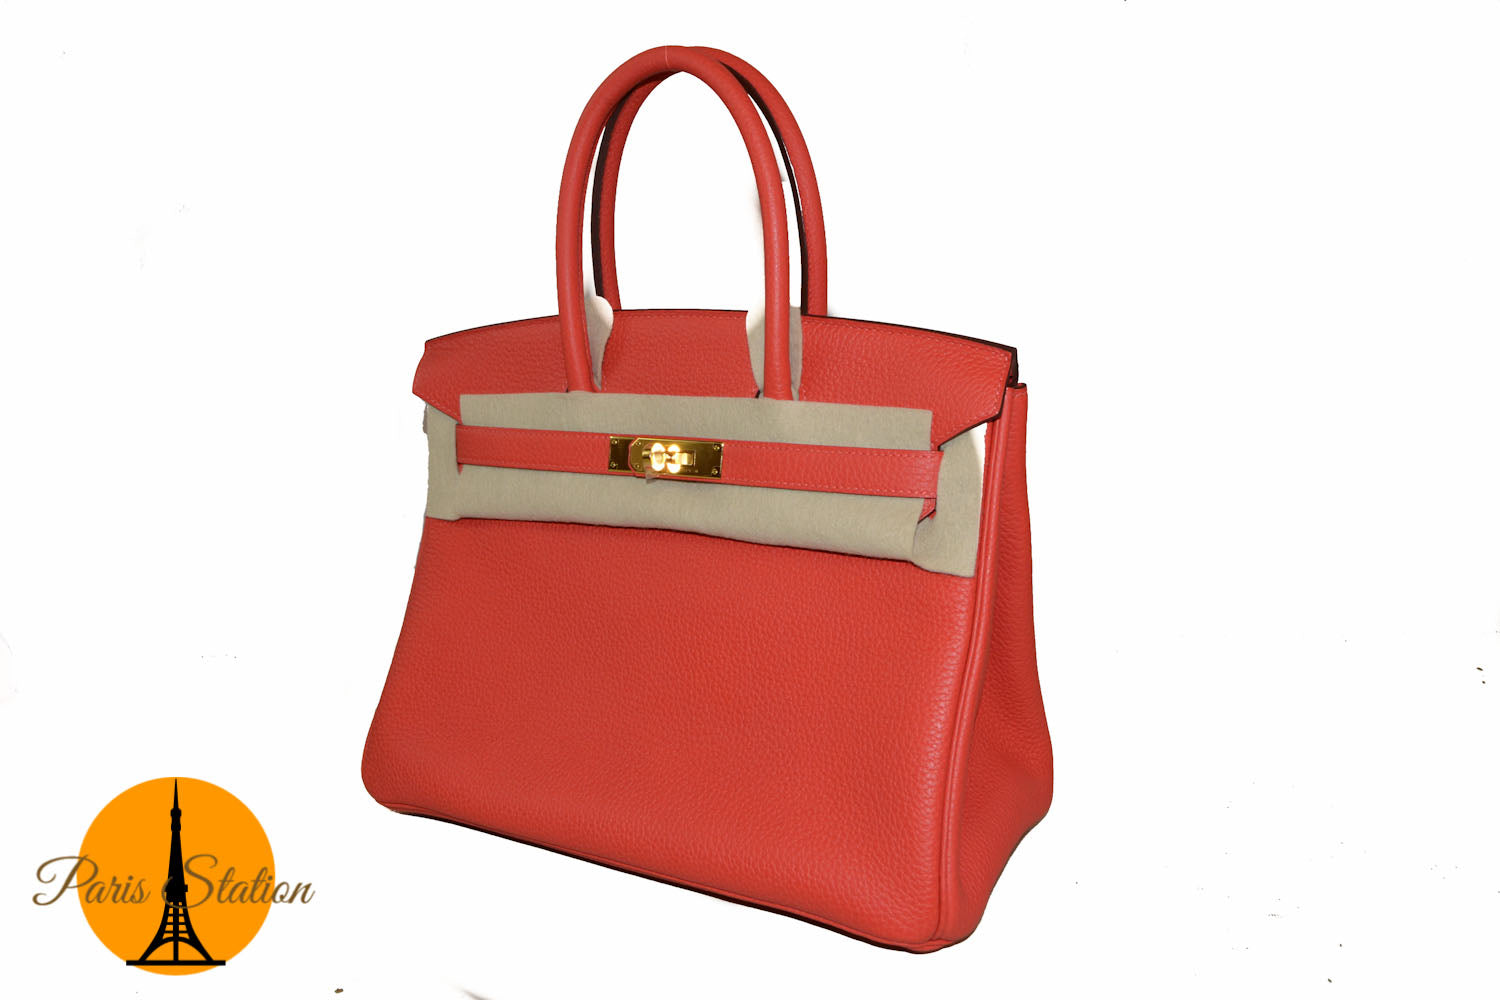 Authentic New Hermes Rouge Pivoine Togo Leather Birkin 30 Bag